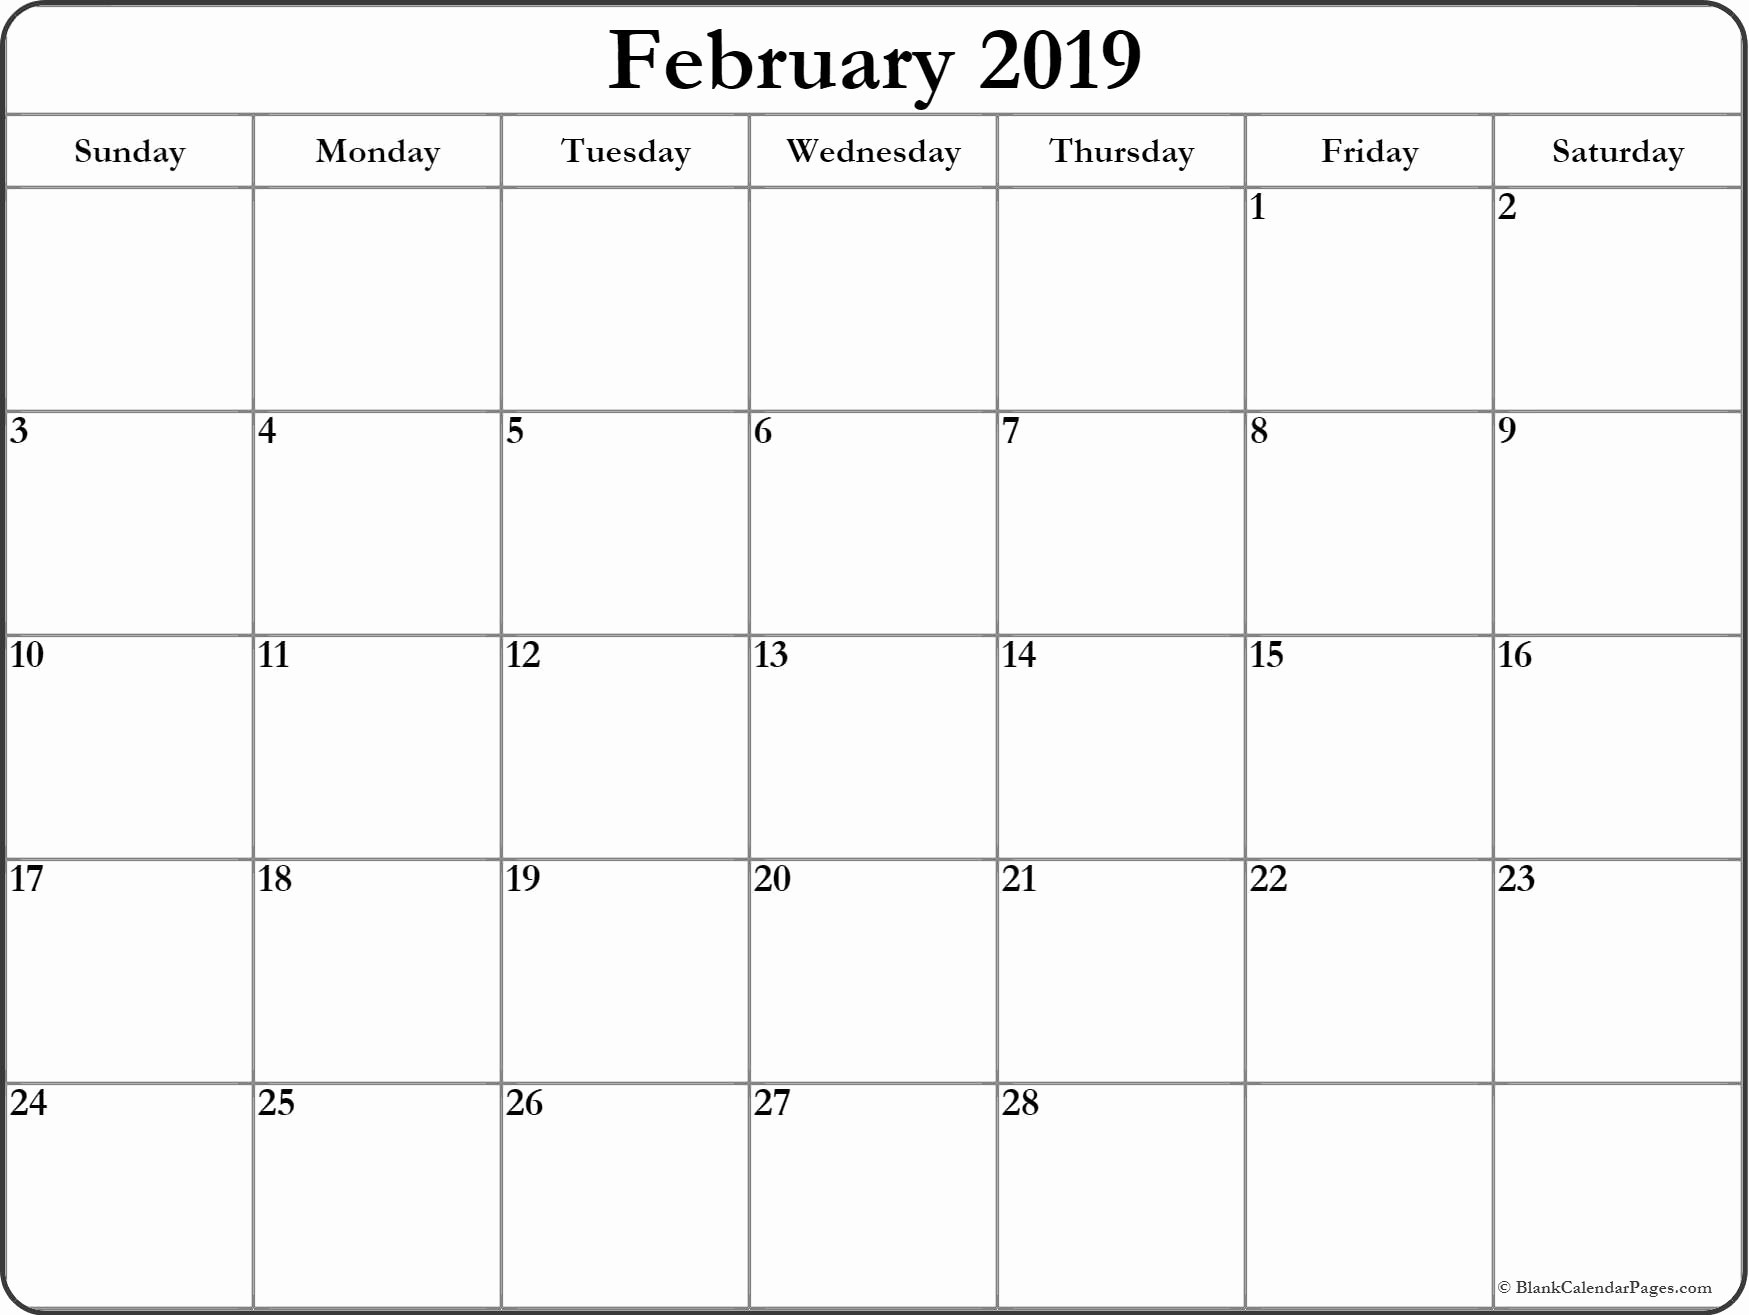 Free Printable Weekly Calendar 2019 Fresh February 2019 Blank Calendar Templates